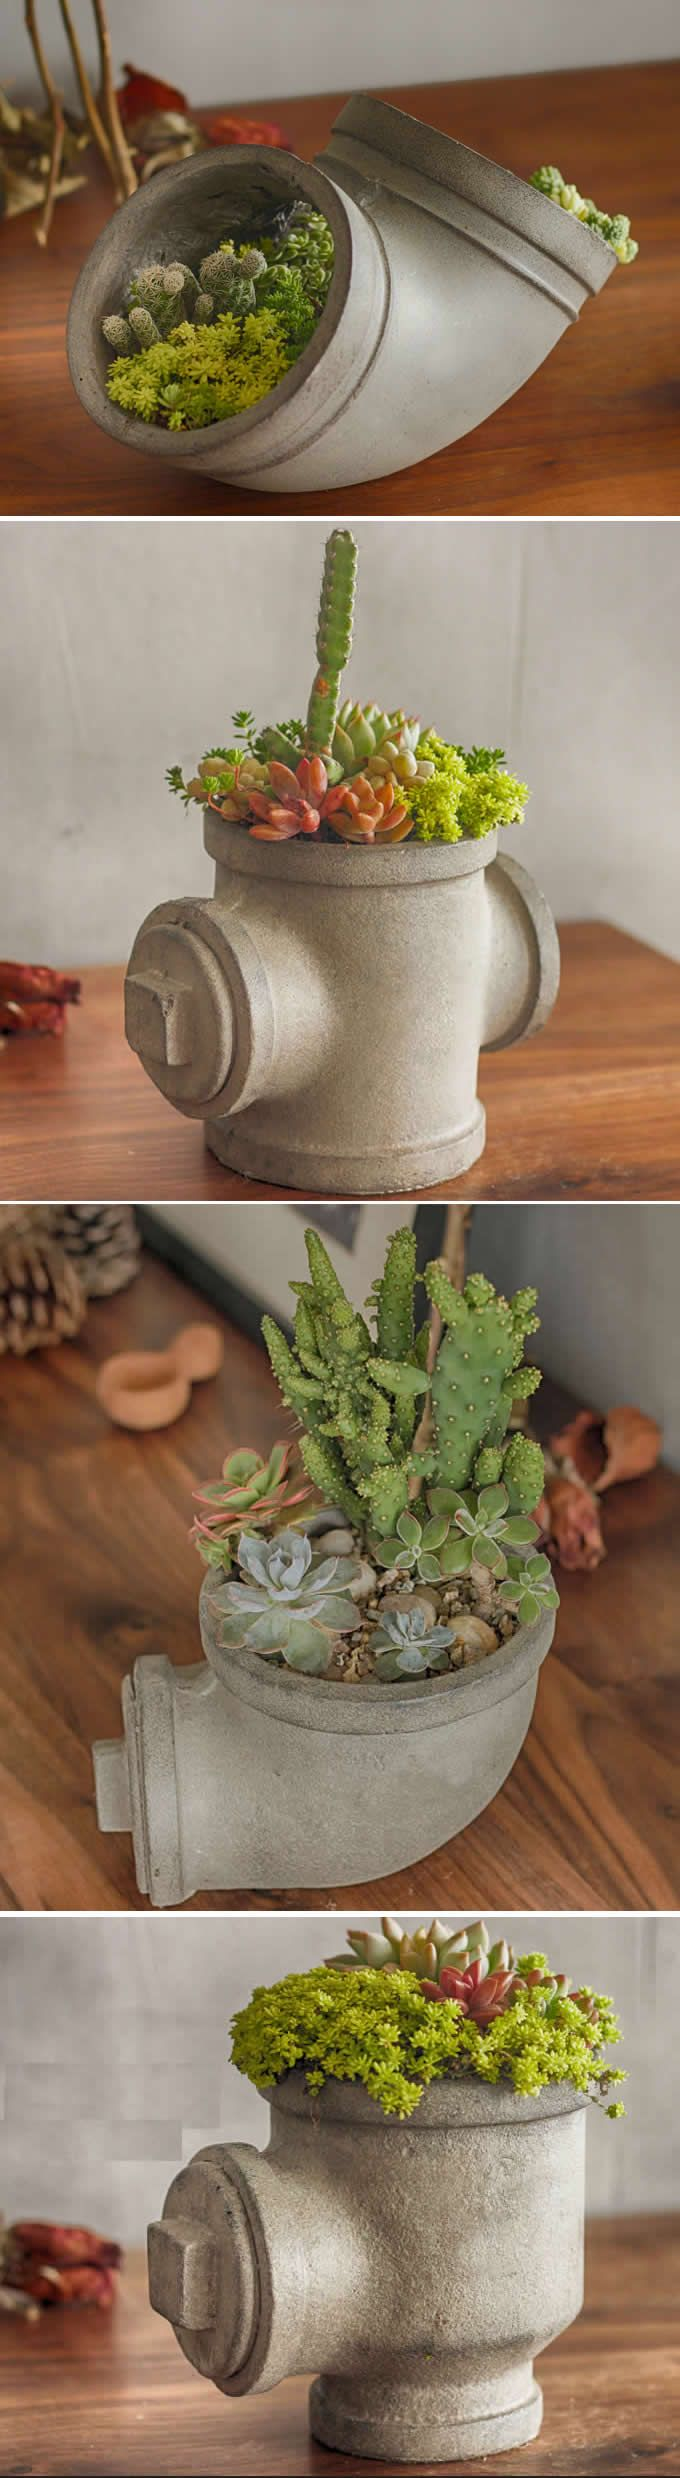 Handmade Concrete Water Pipe Succulent / Planter / Plant Pot / Flower Pot